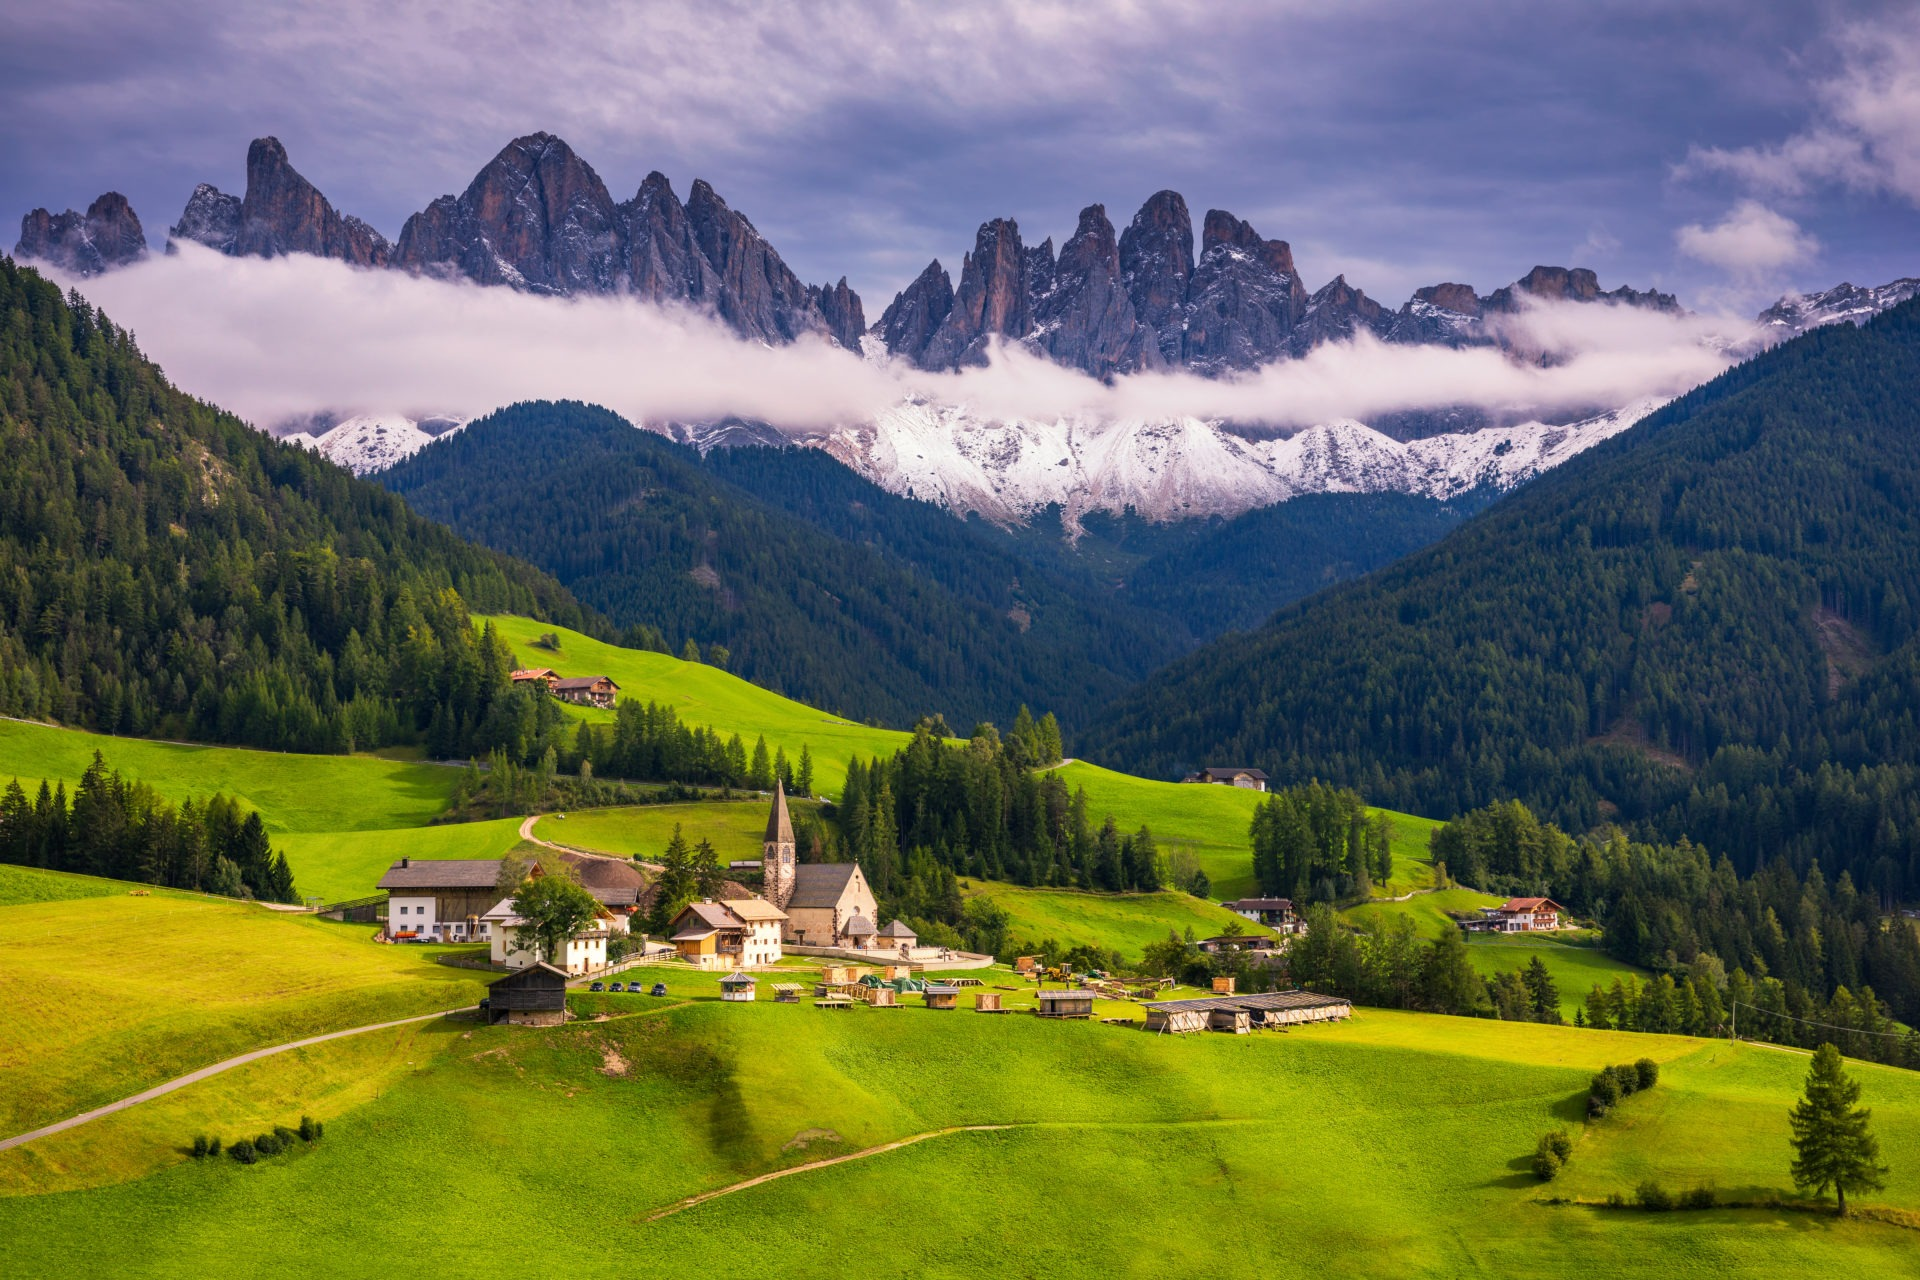 Agenti Immobiliari Trento buying property in italy: the complete guide | italy